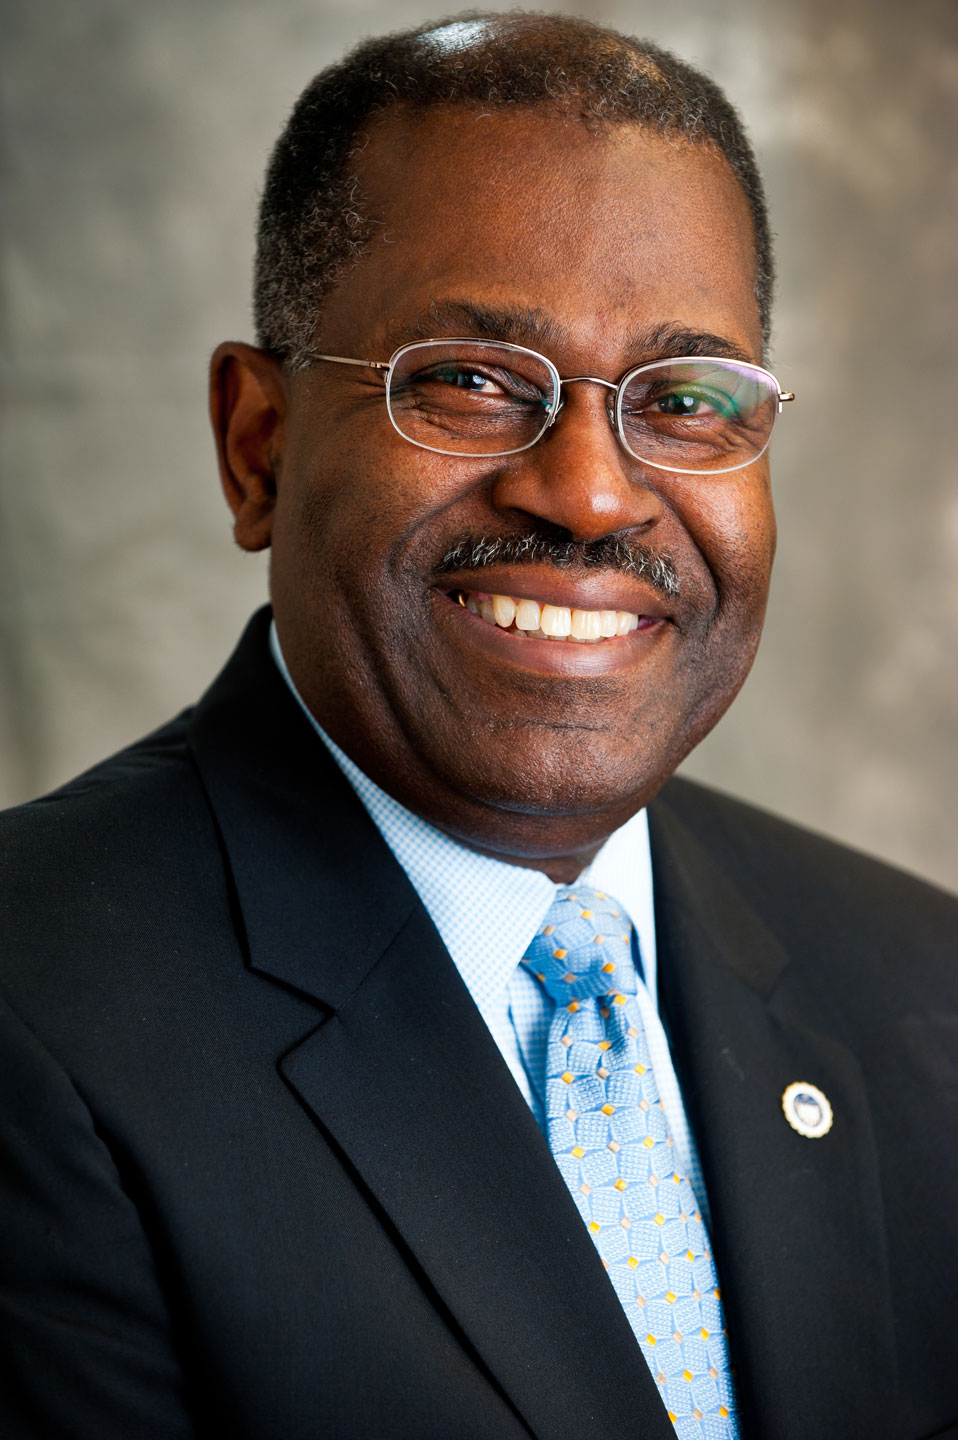 ADEA President Leo E. Rouse, D.D.S., Dean of the Howard University College of Dentistry